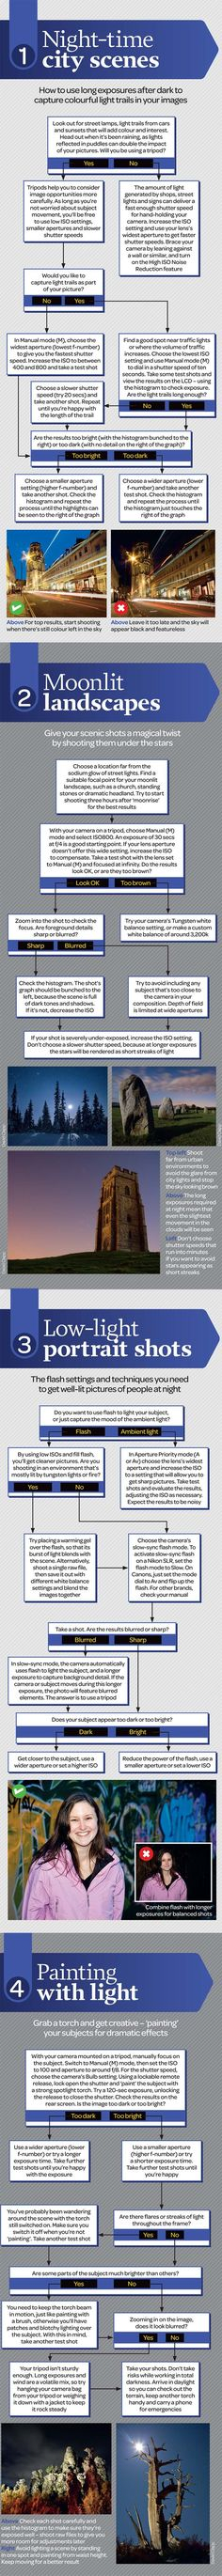 Photography tips | Free night photography cheat sheet: how to shoot popular low-light scenes | Digital Camera World